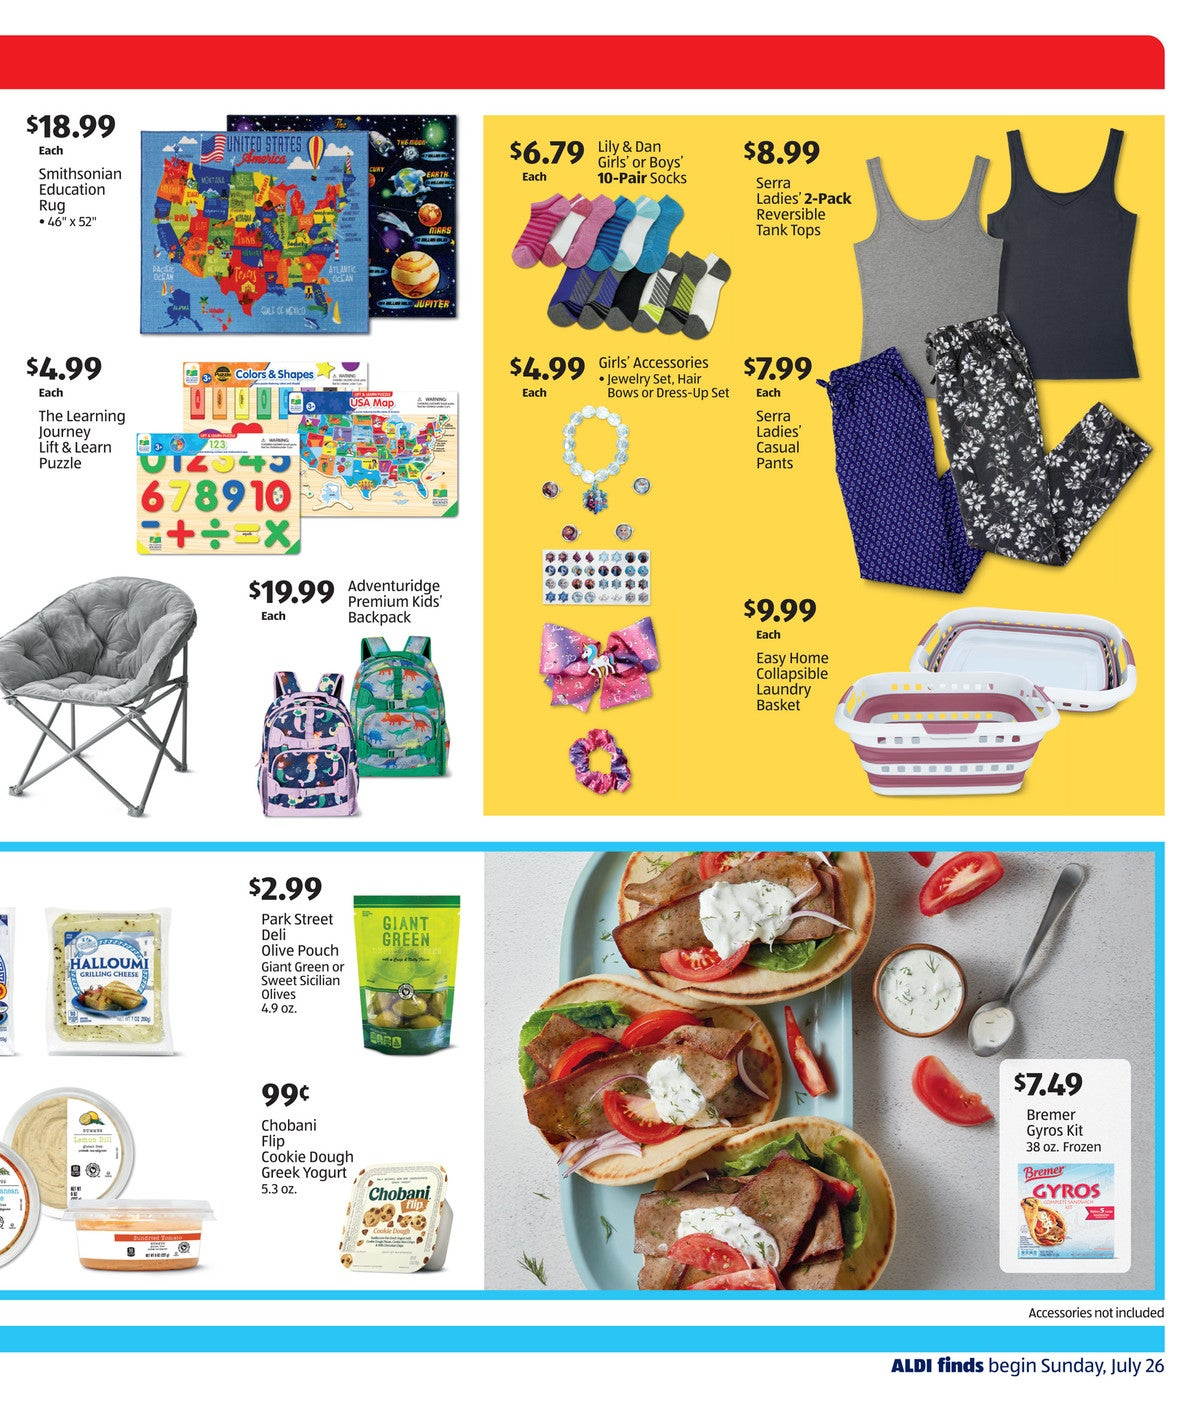 aldi ad preview July 29th - August 4th, 2020 page 3